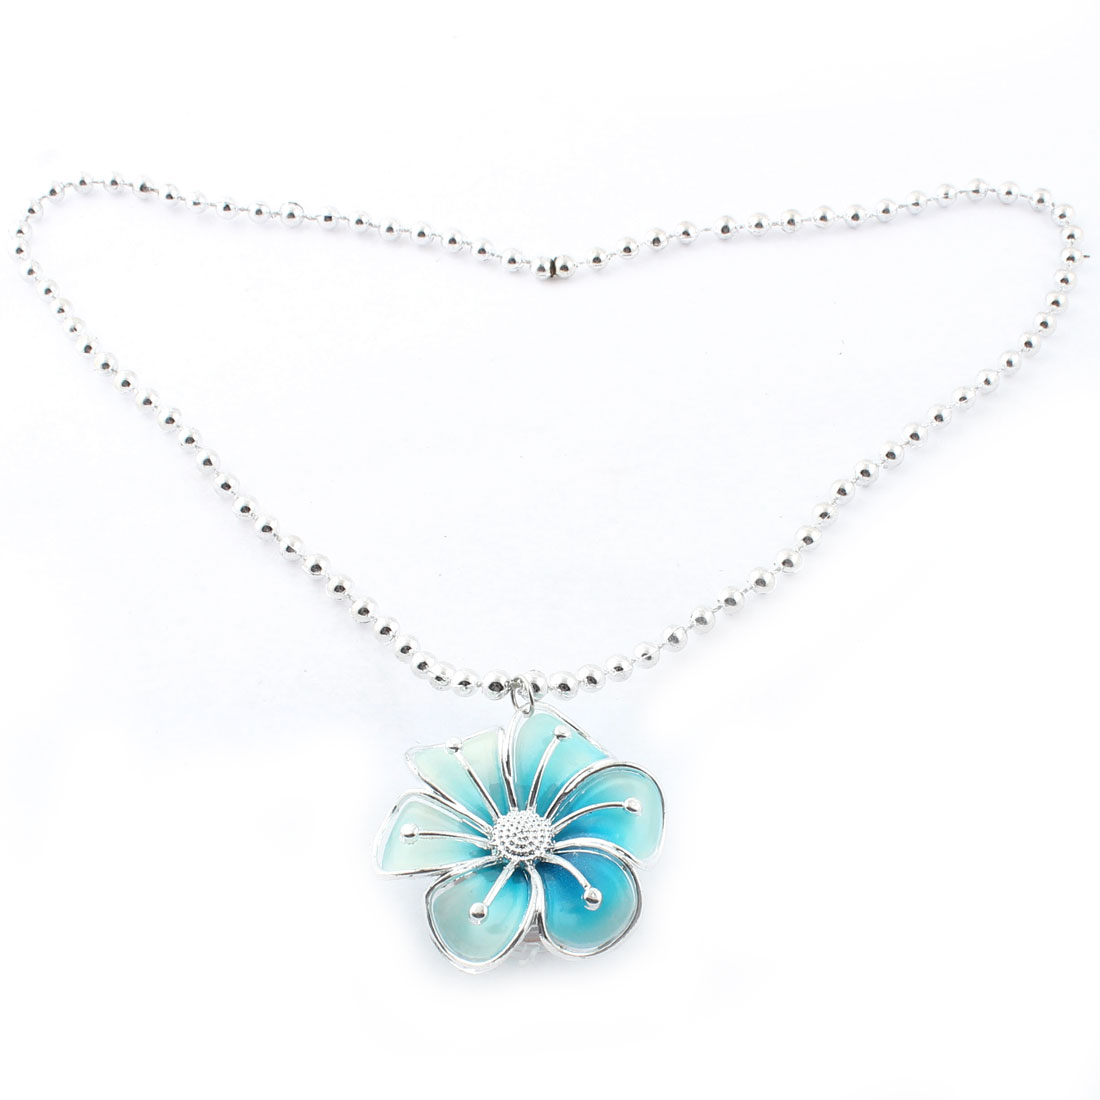 Party Flower Shape Light Up LED Flashing Necklace Pendant Gift